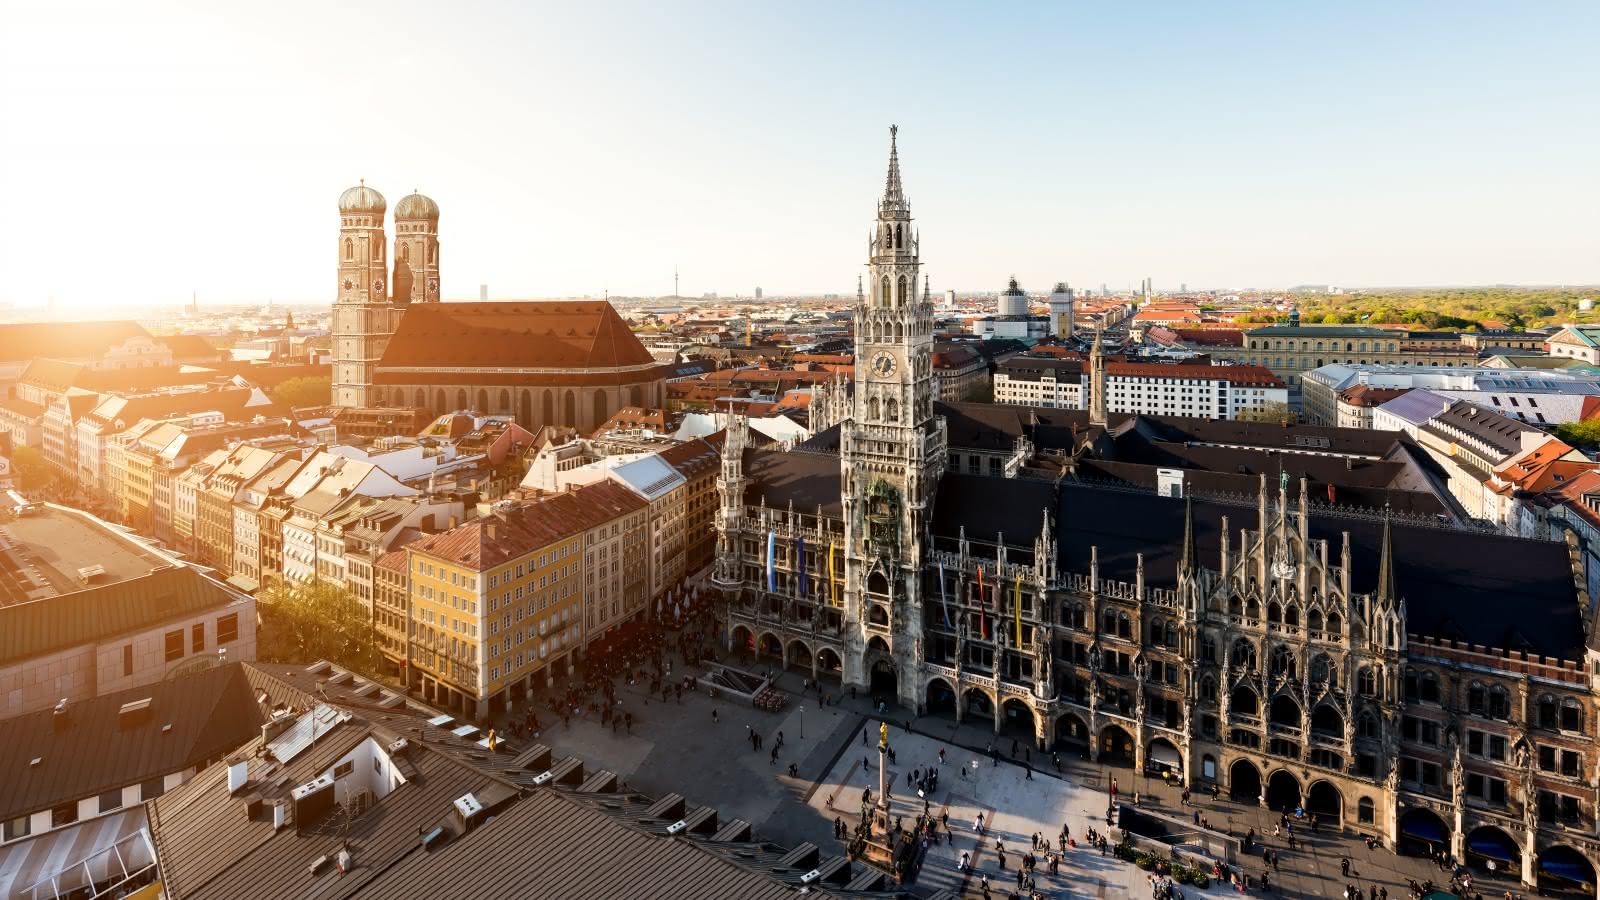 Marienplatz aerial views in Munich